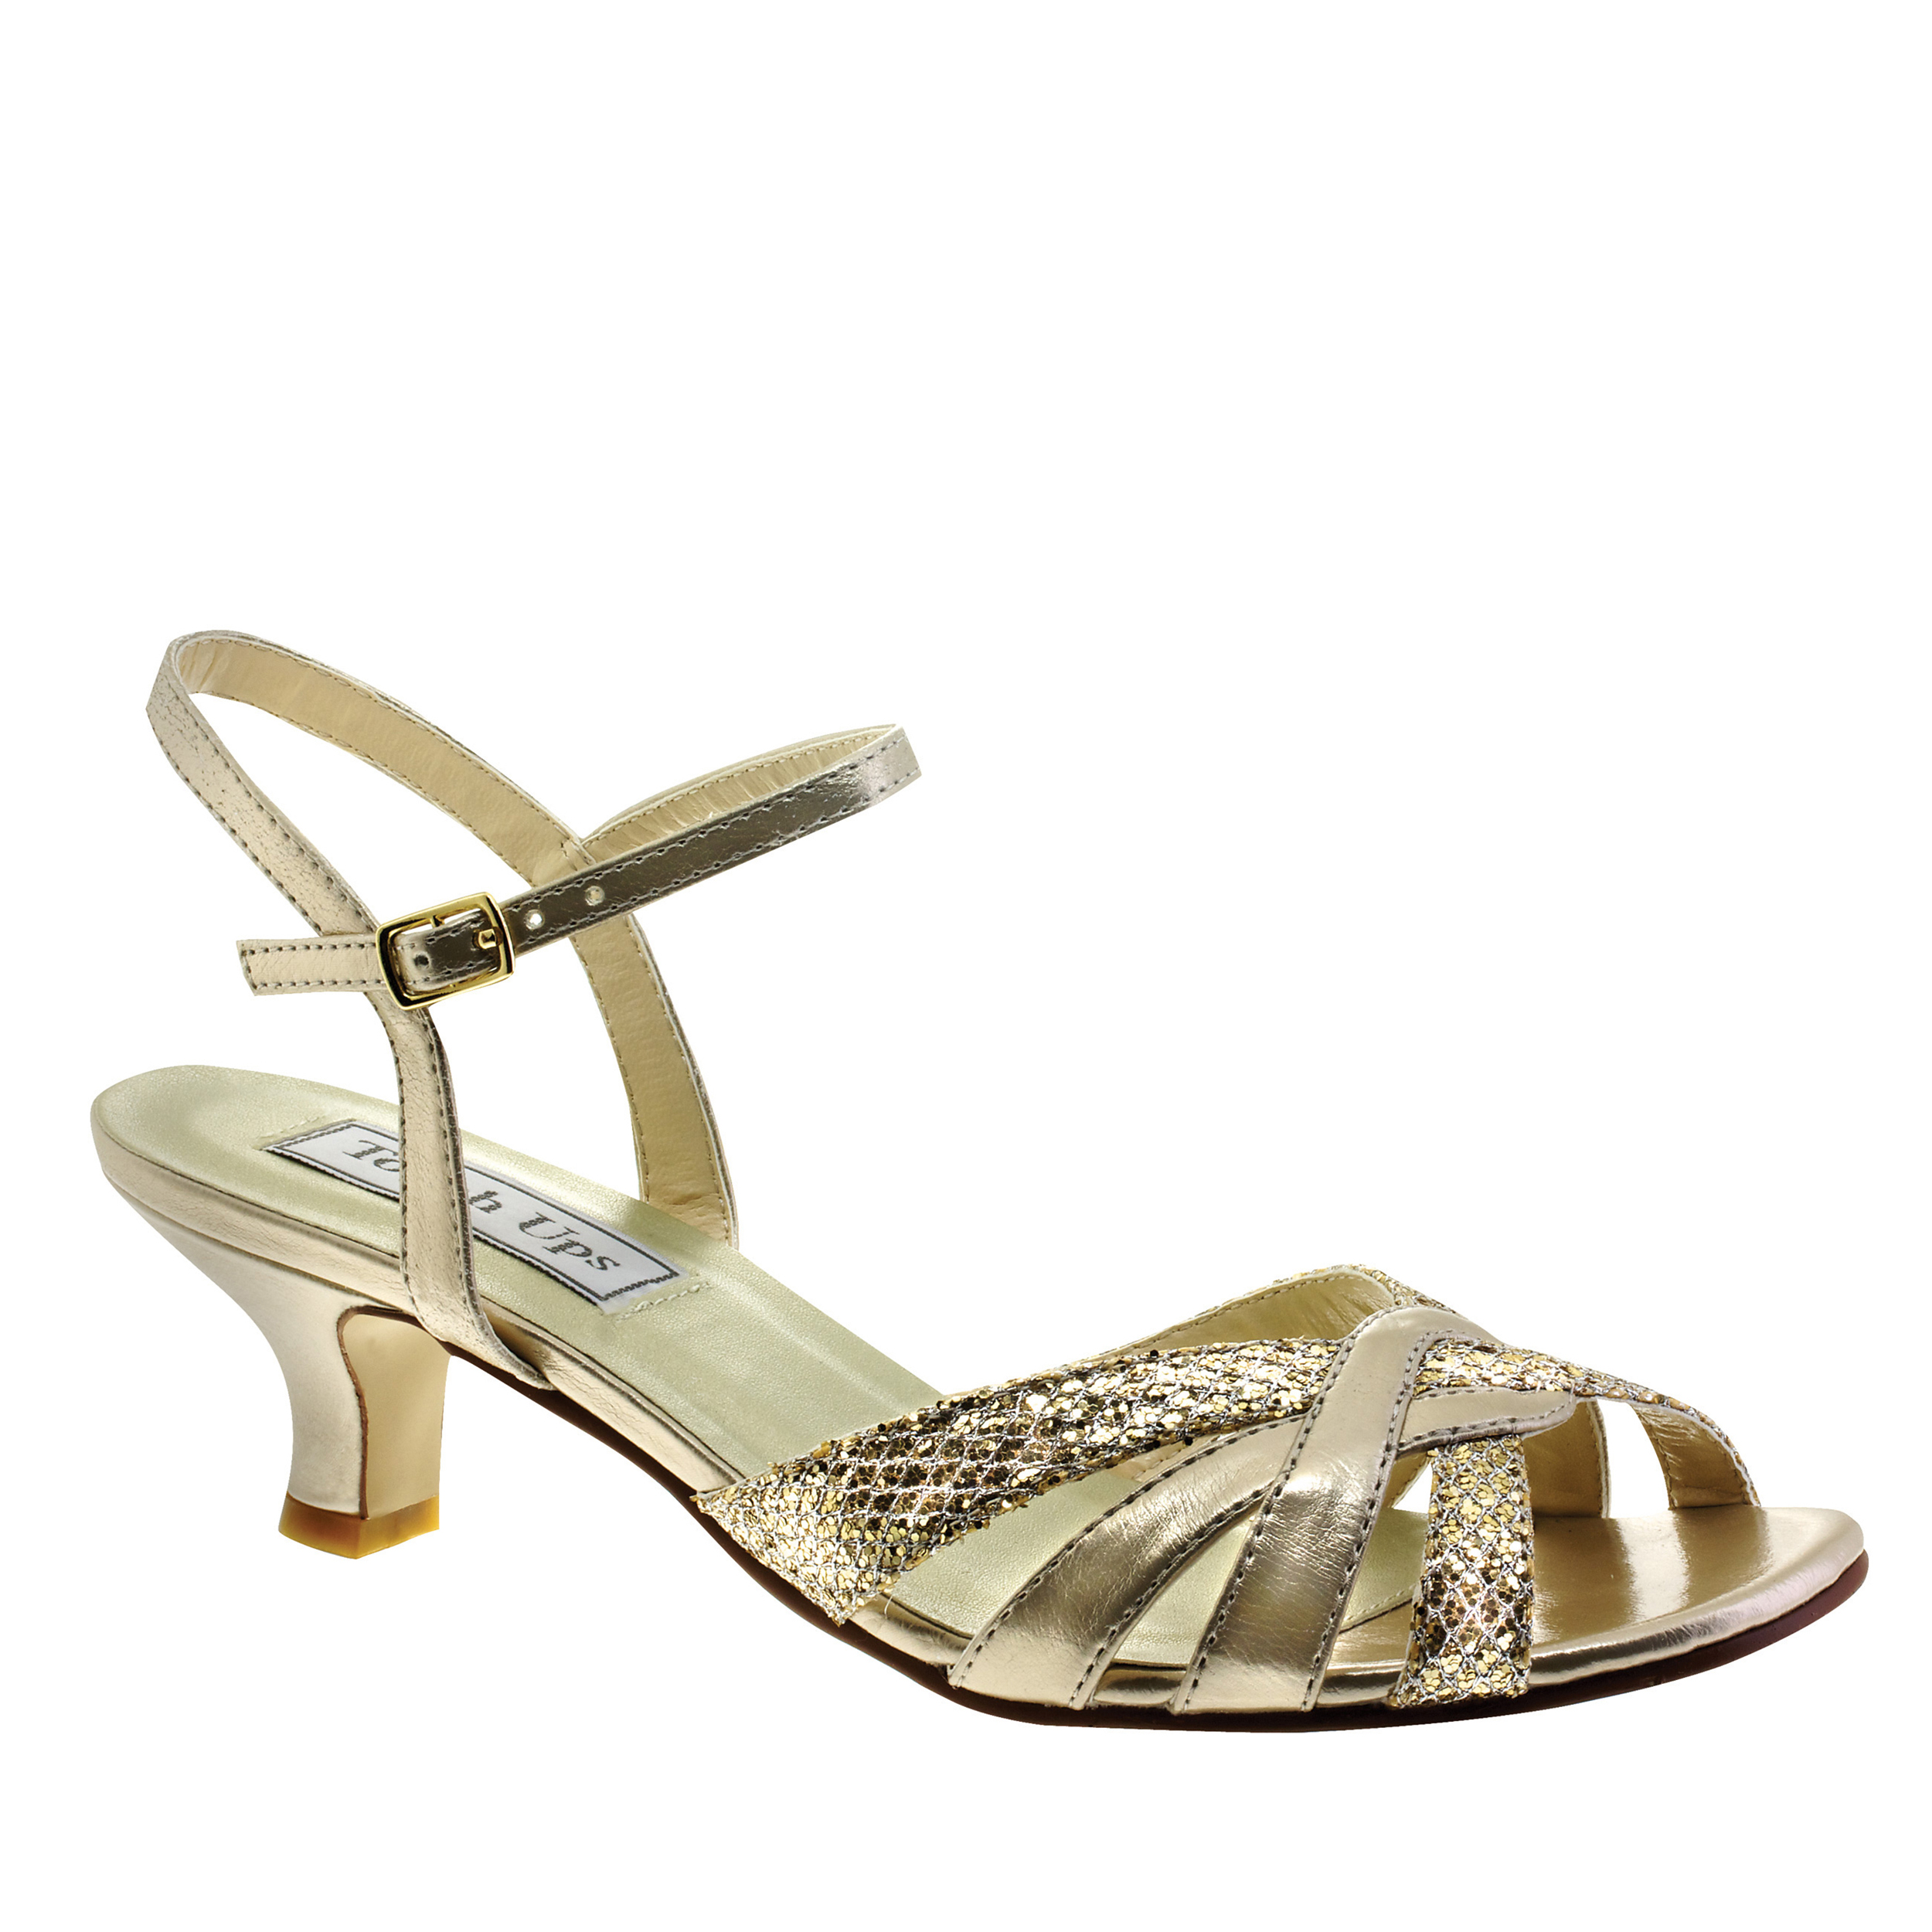 Touch Ups Womens Jane Ankle-Strap Sandal,Champagne Glitter,6.5 W US